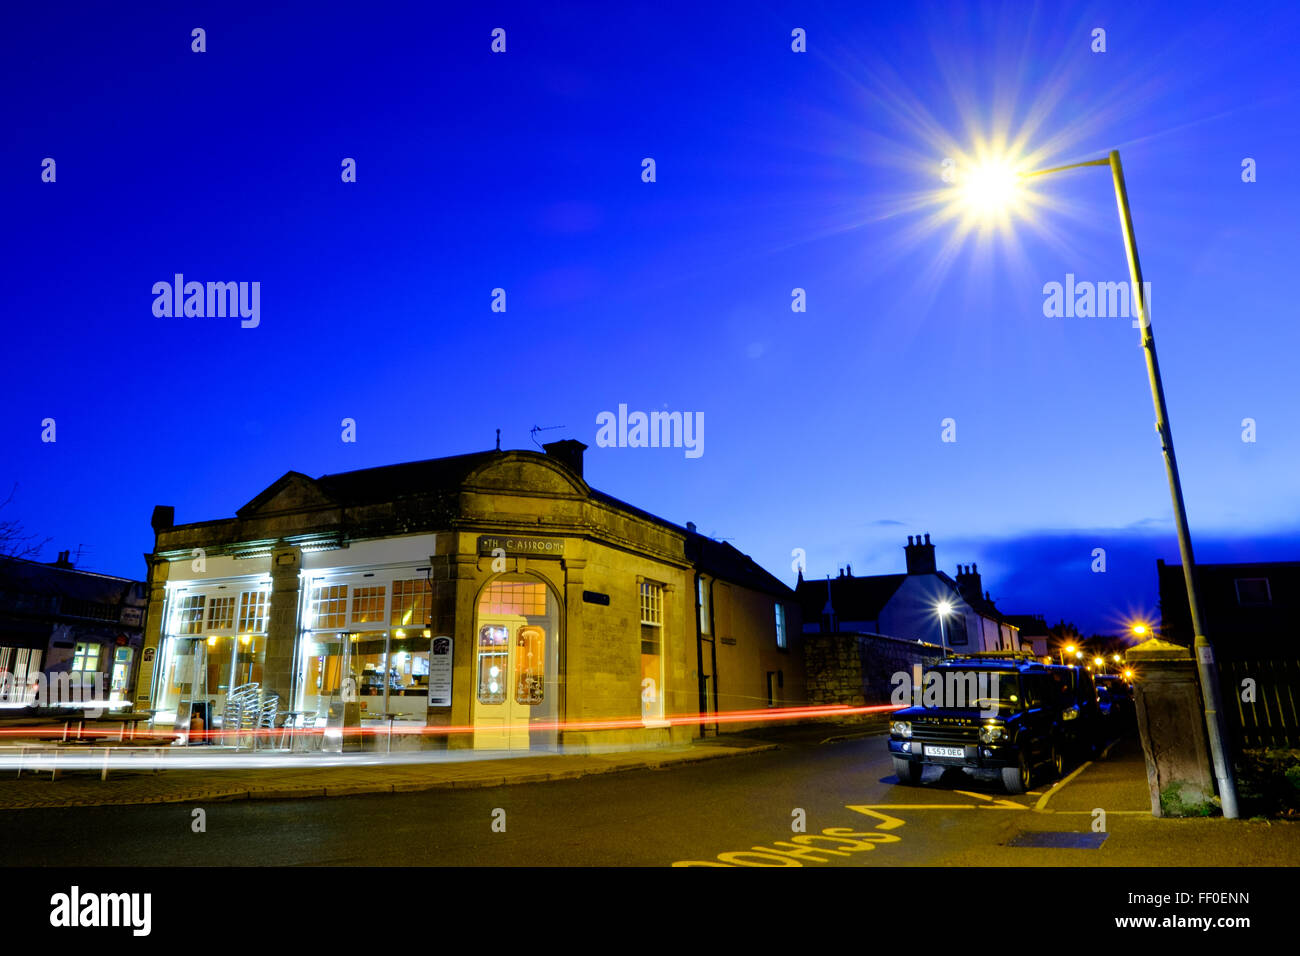 A night photograph of The Classroom Restaurant with a streetlight and car lights in Nairn. - Stock Image